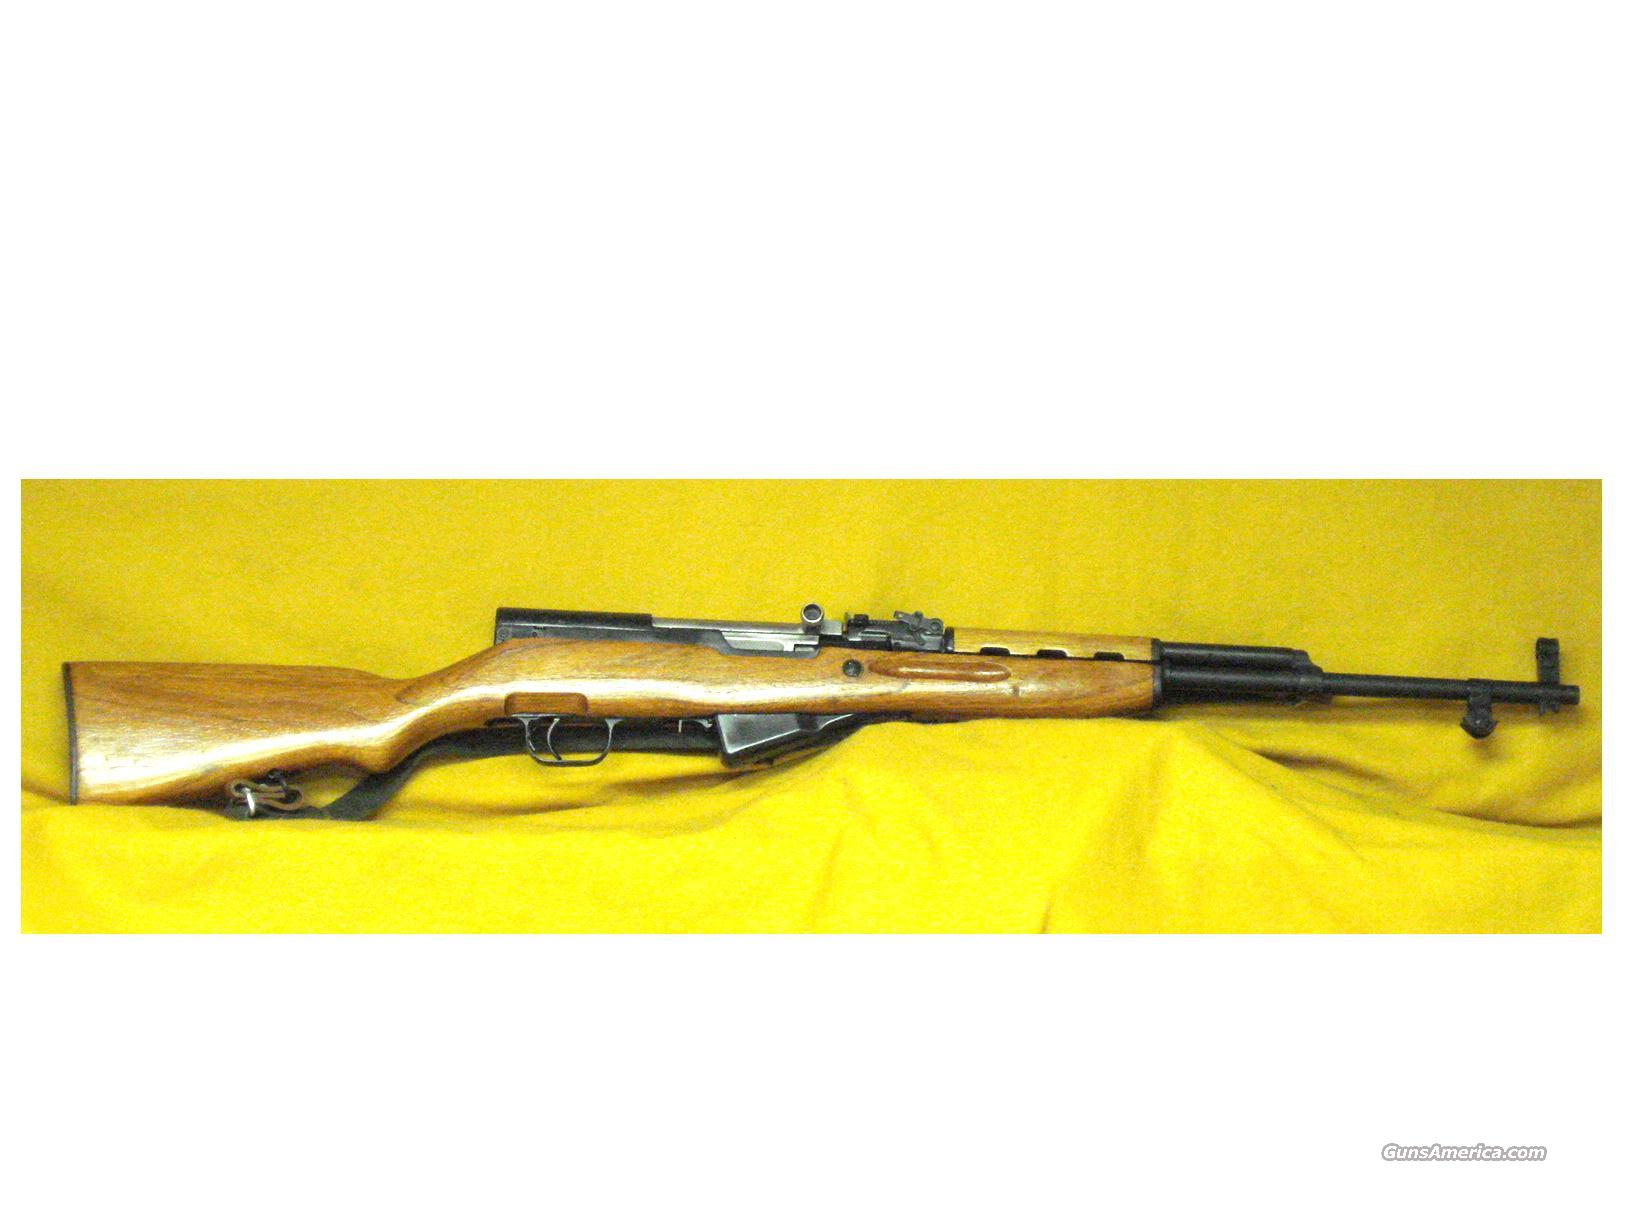 "CHI COM SKS 7.62X39 18"" BARREL  Guns > Rifles > SKS Rifles"